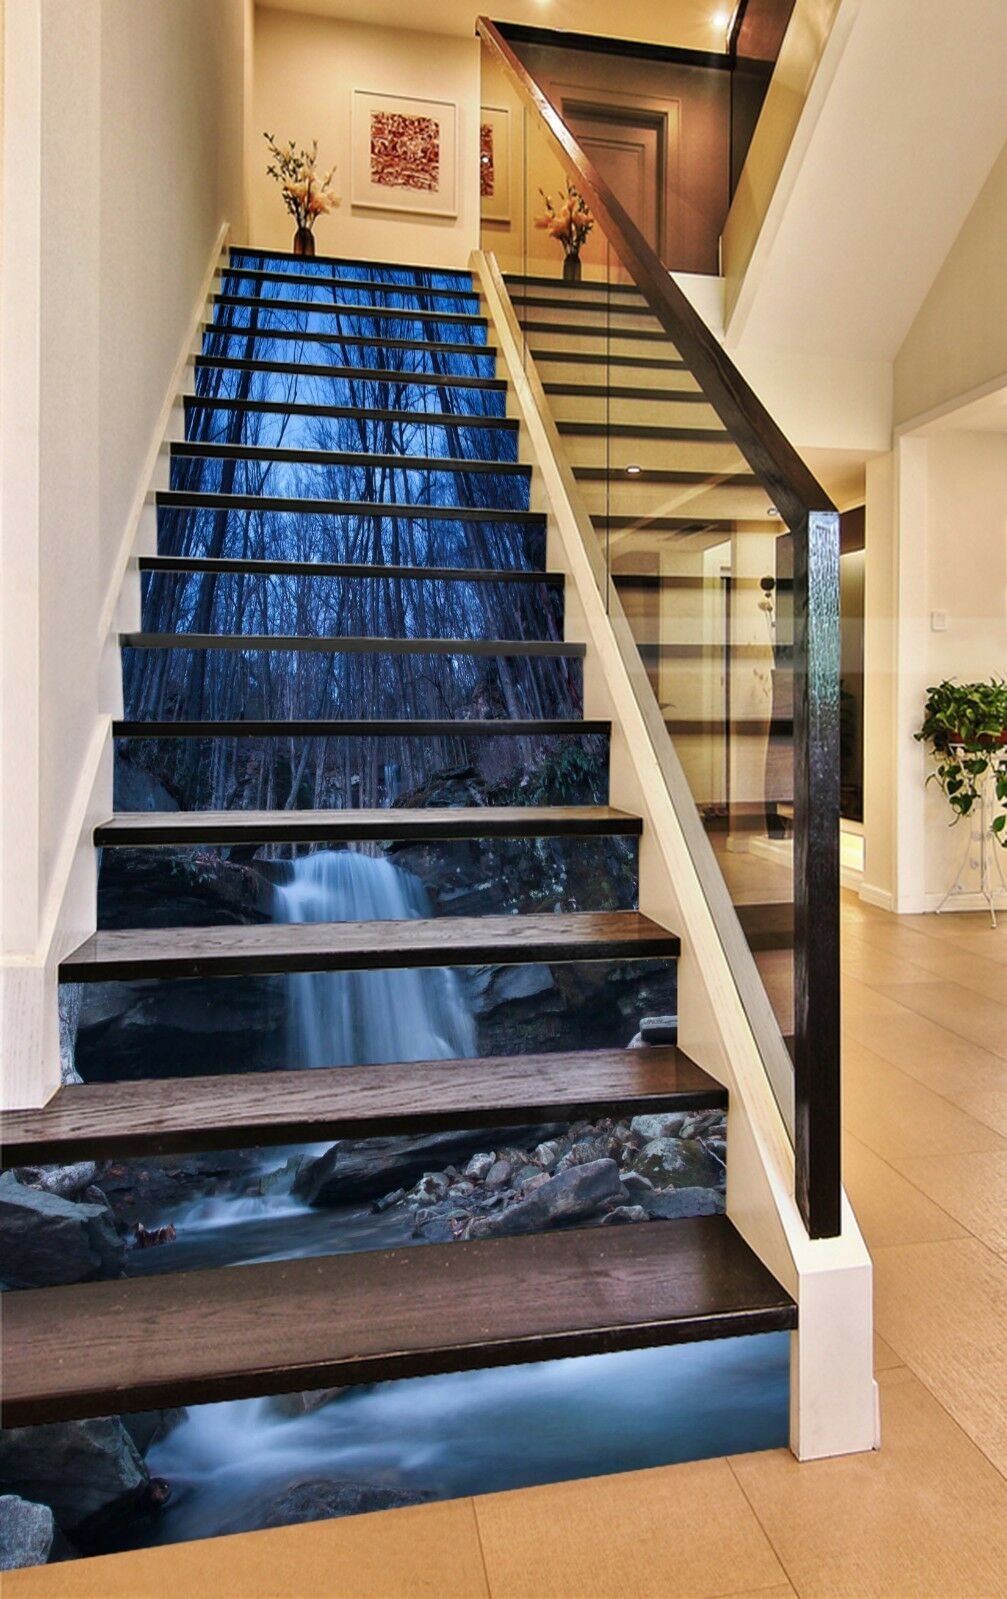 3D Forest lake 5 Stair Risers Decoration Photo Mural Vinyl Decal Wallpaper UK